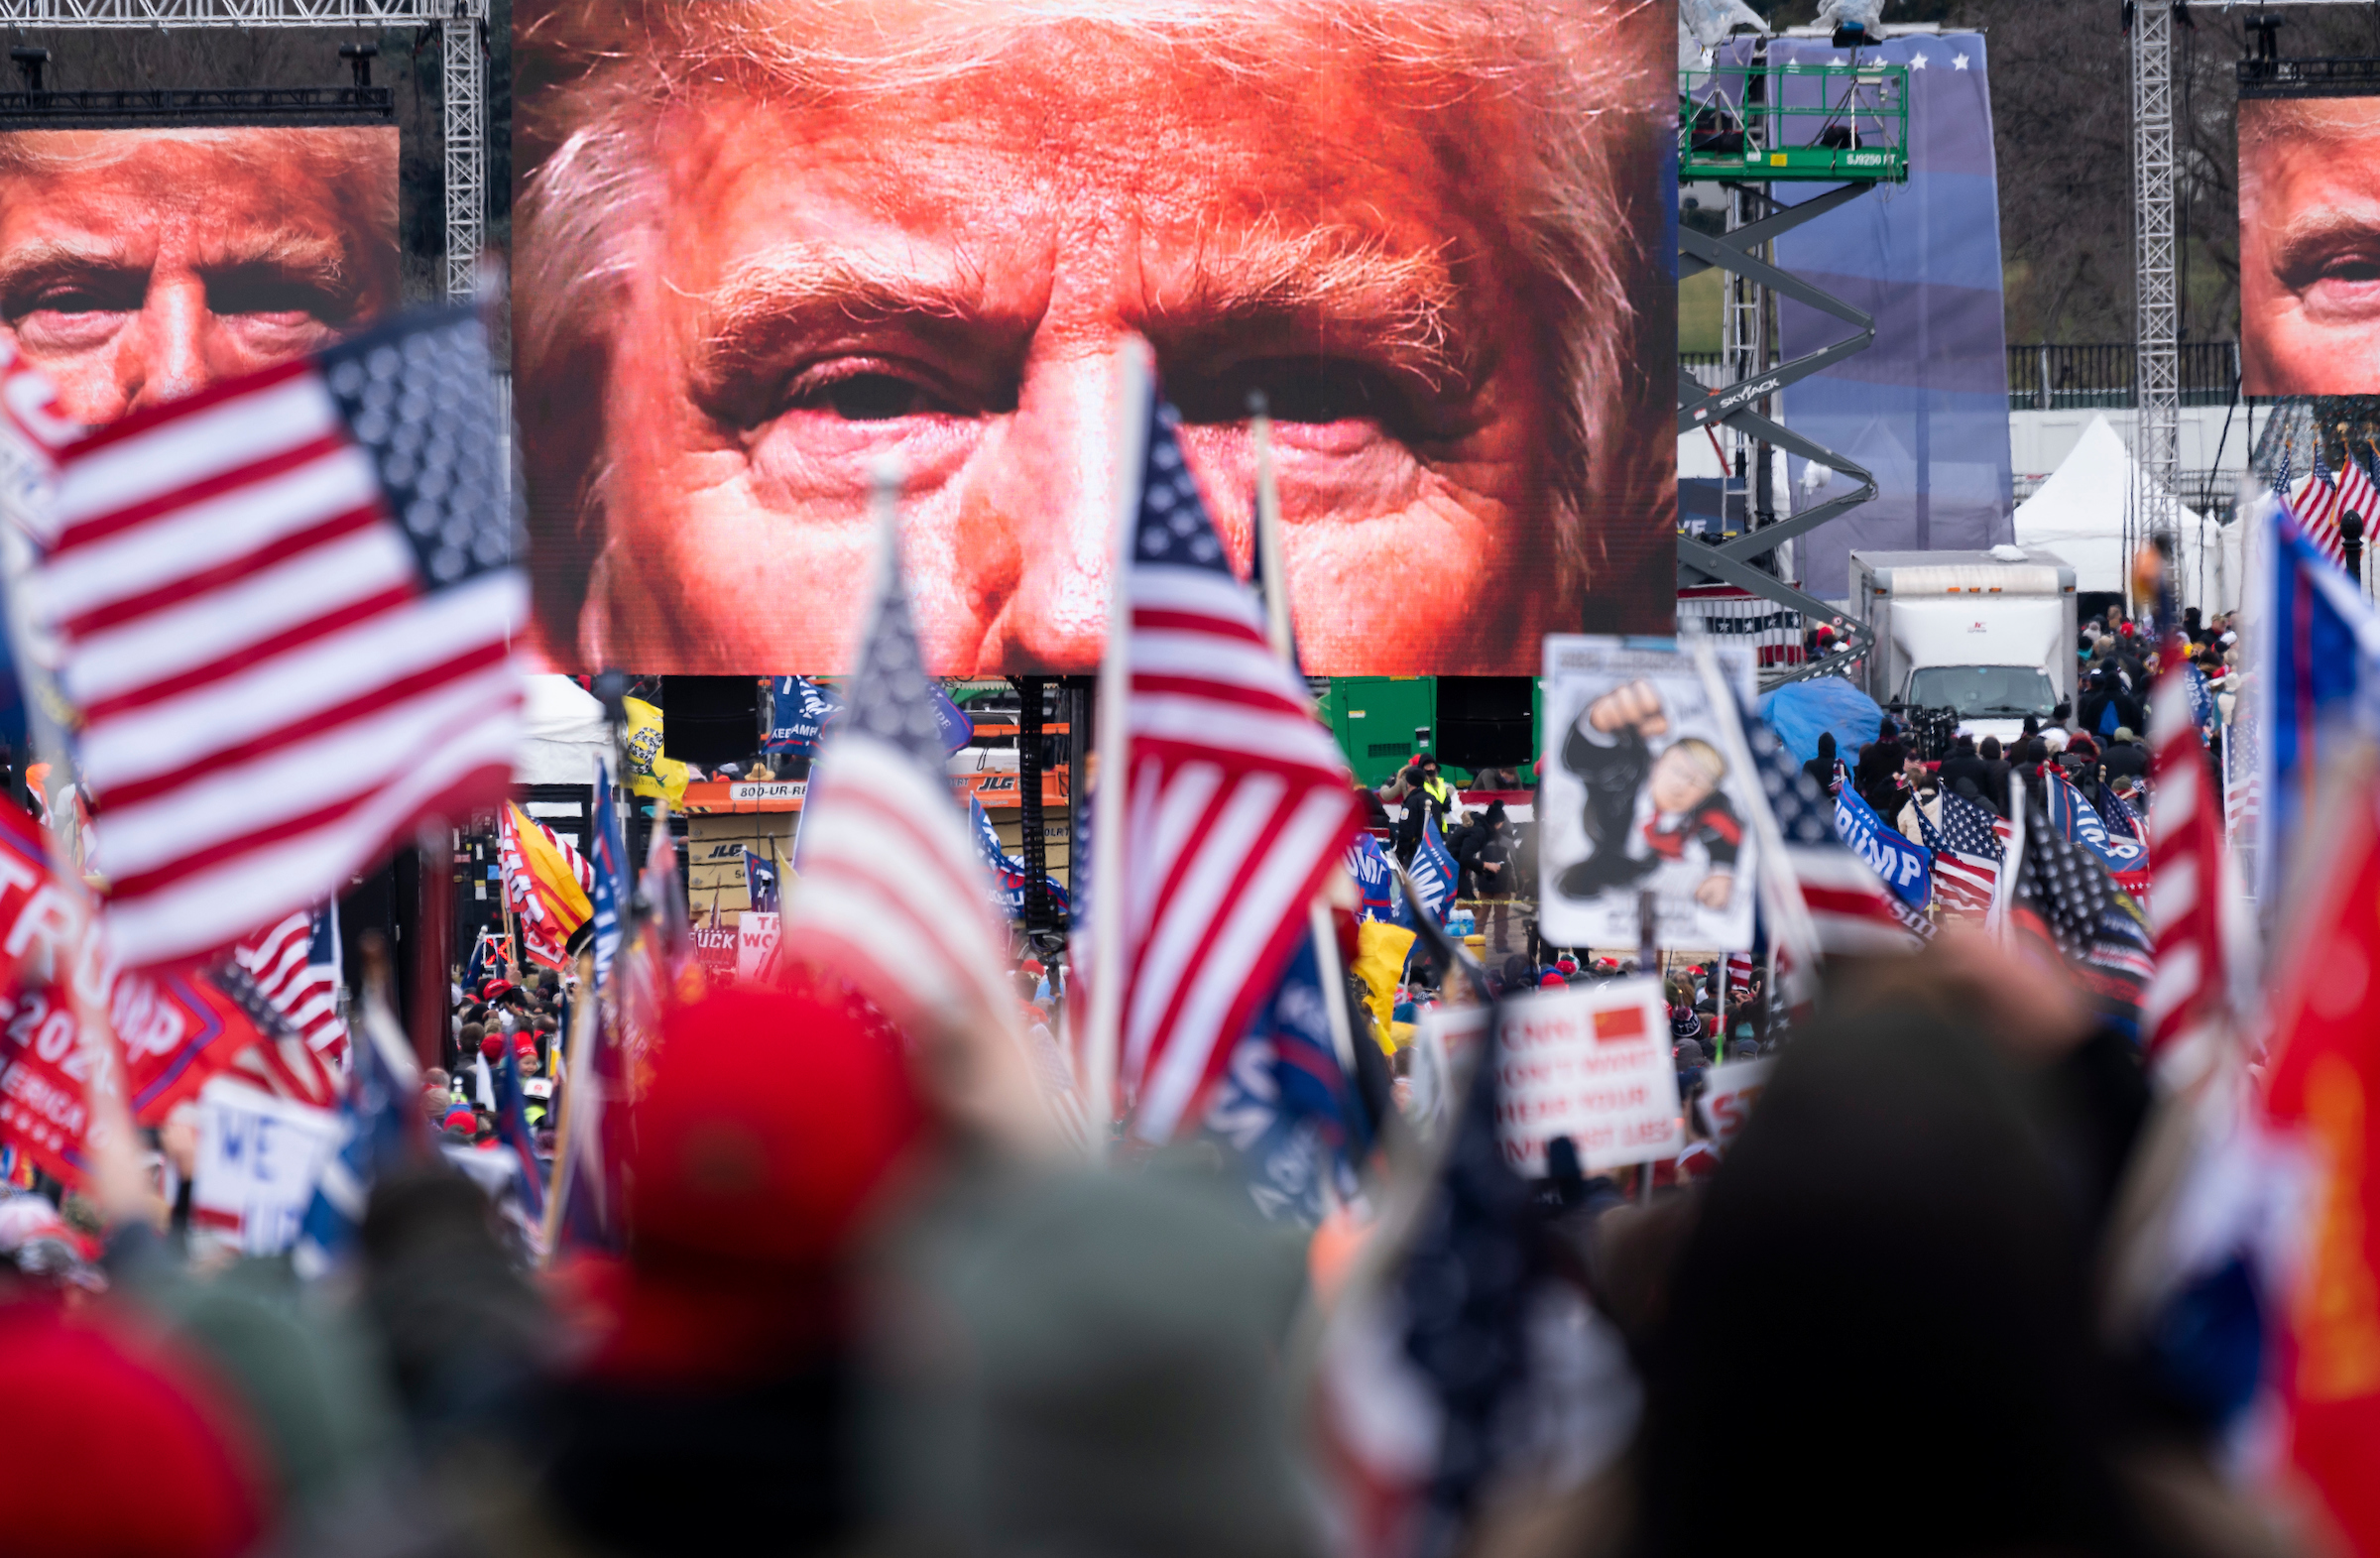 An image of President Donald Trump appears on video screens before his speech to supporters near the White House on Jan. 6. (Bill Clark/CQ Roll Call file photo)